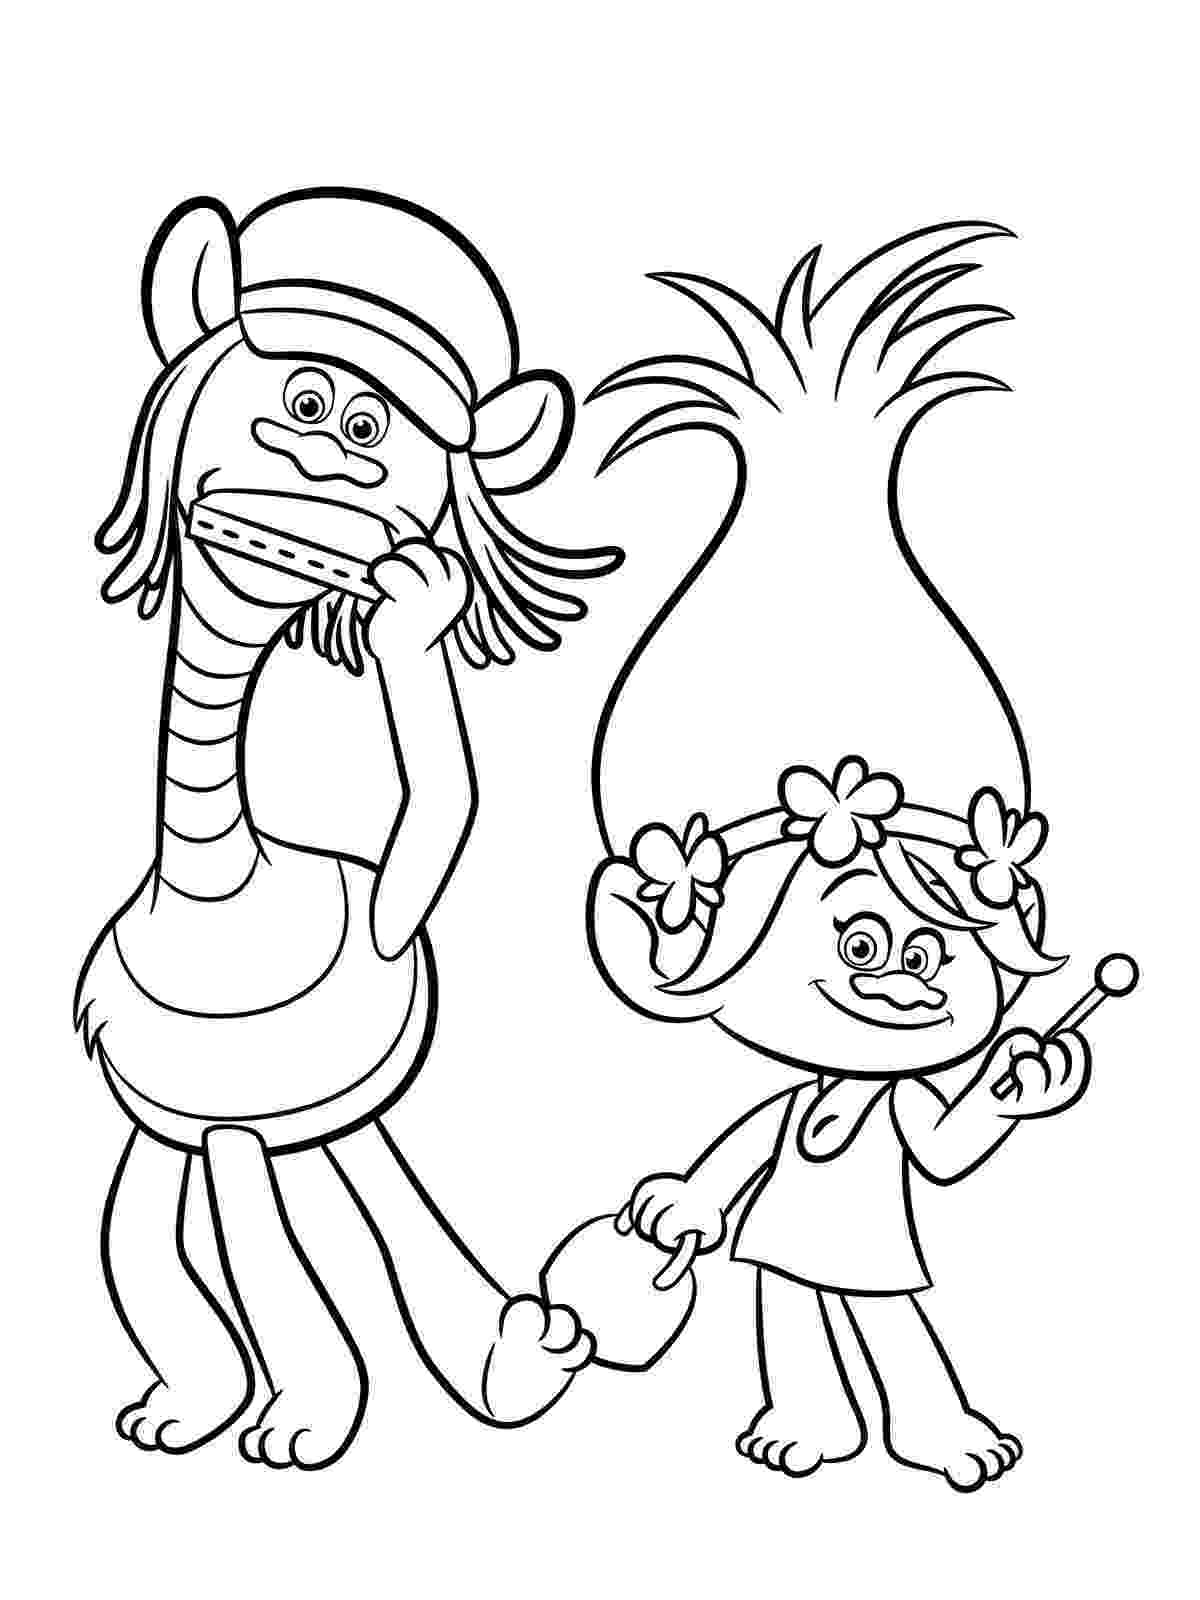 free disney coloring pages disney coloring pages best coloring pages for kids coloring pages disney free